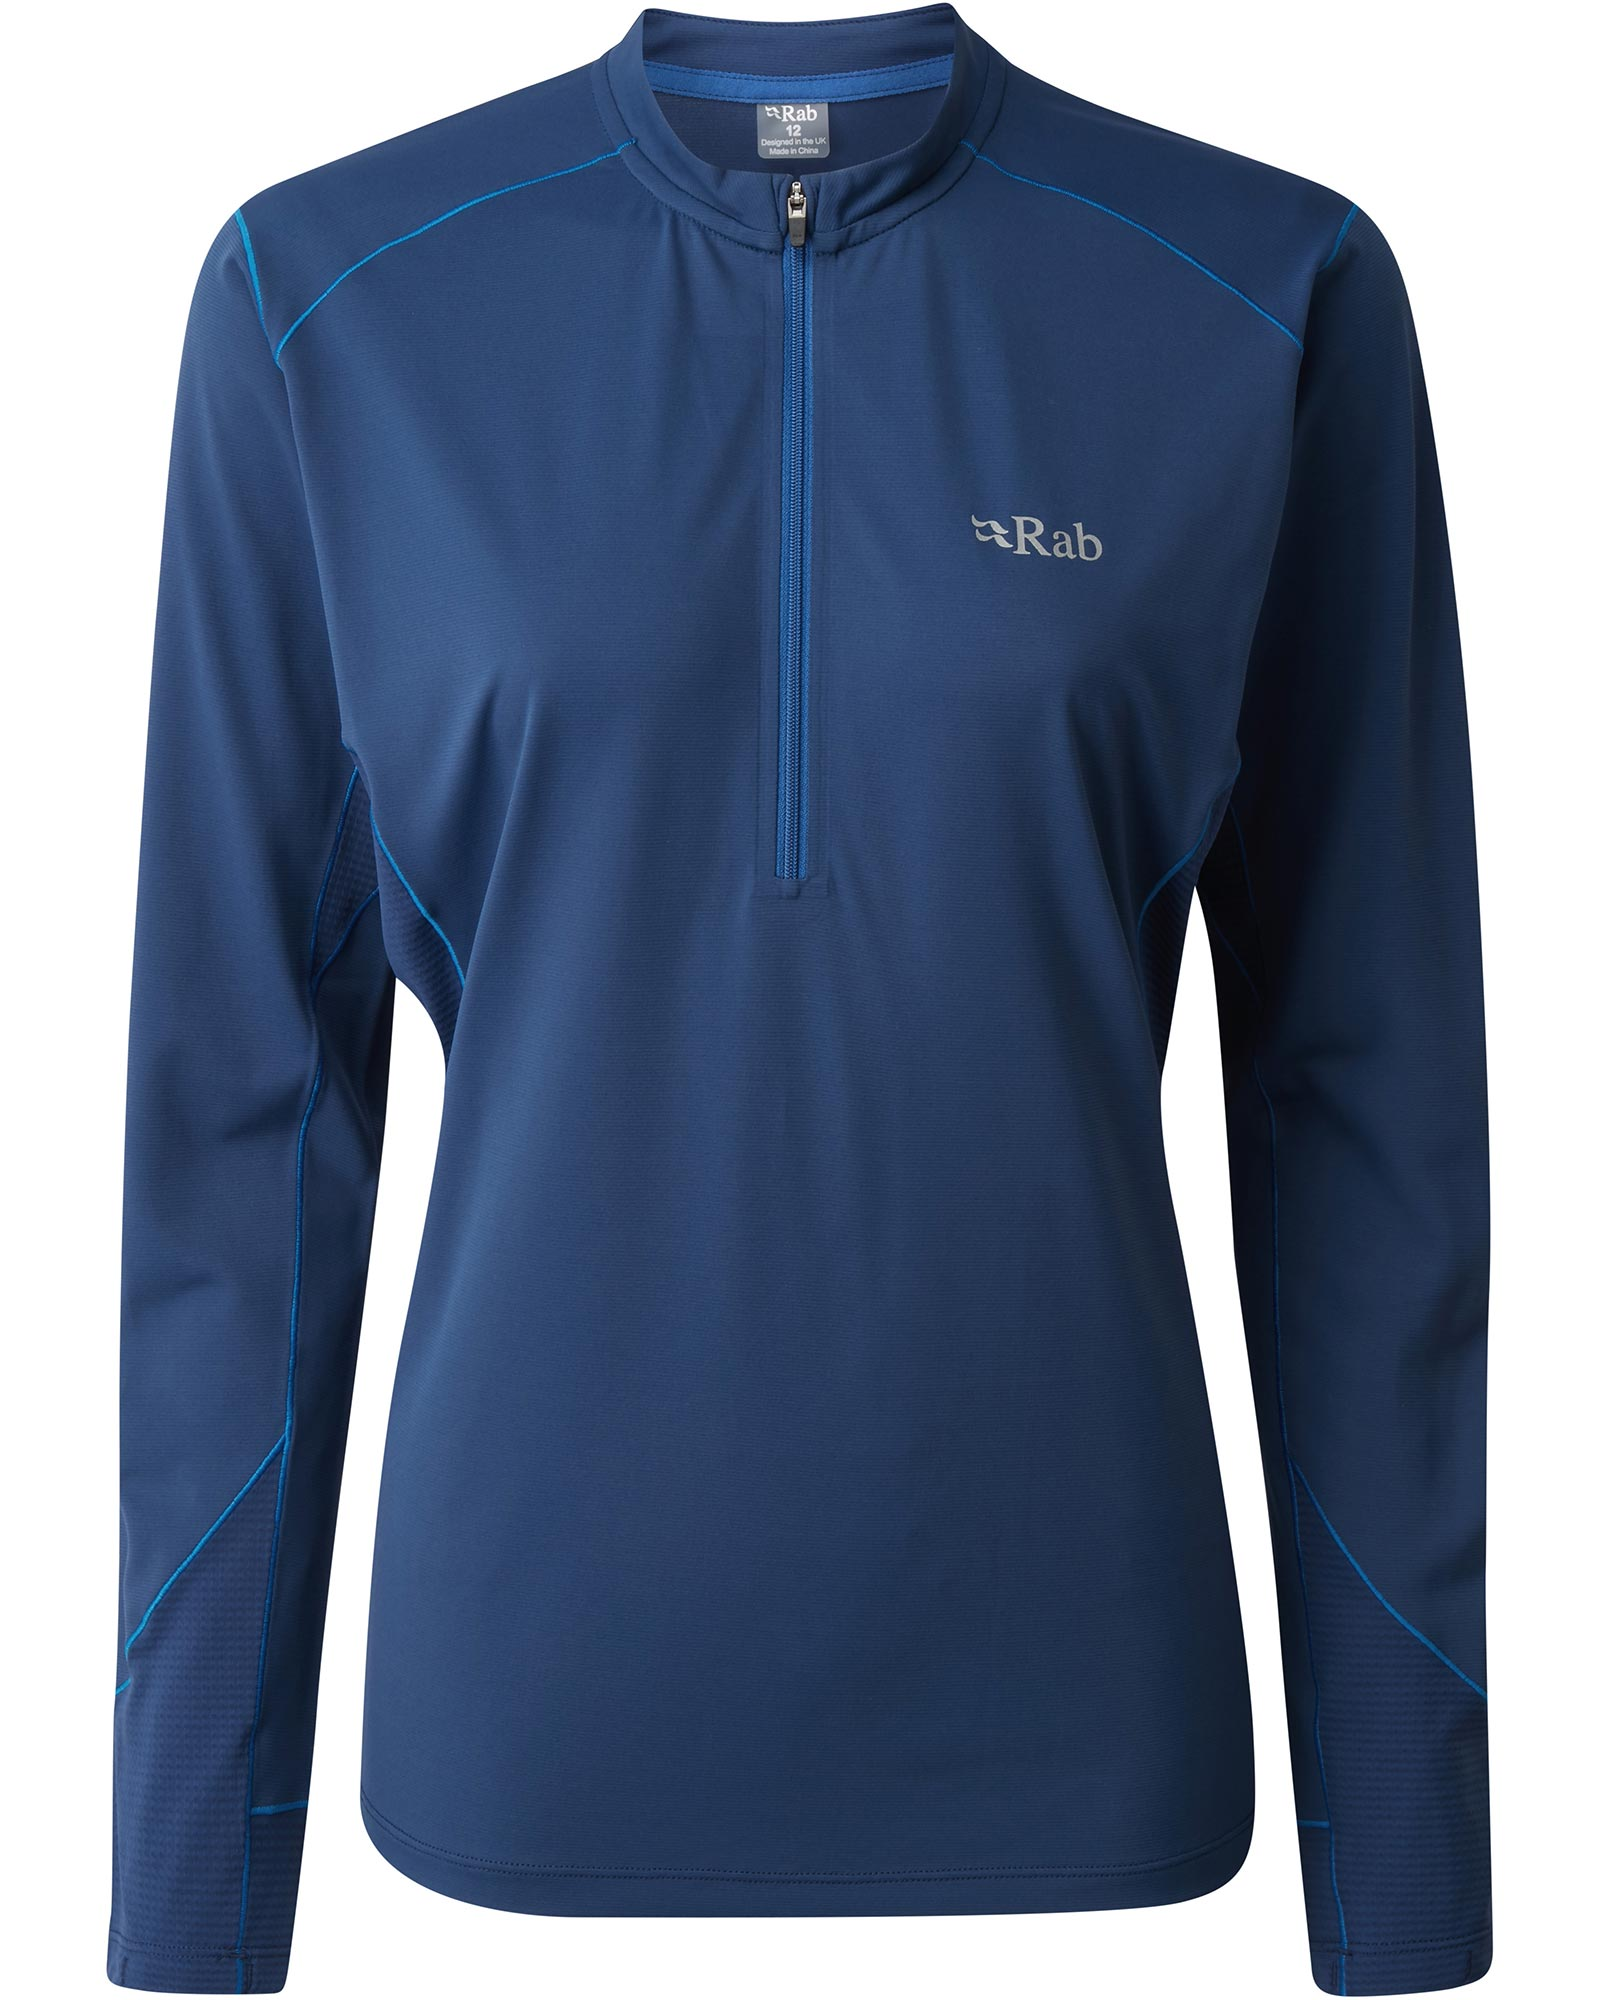 Rab Women's Sonic Long Sleeve T-Shirt Blueprint 0